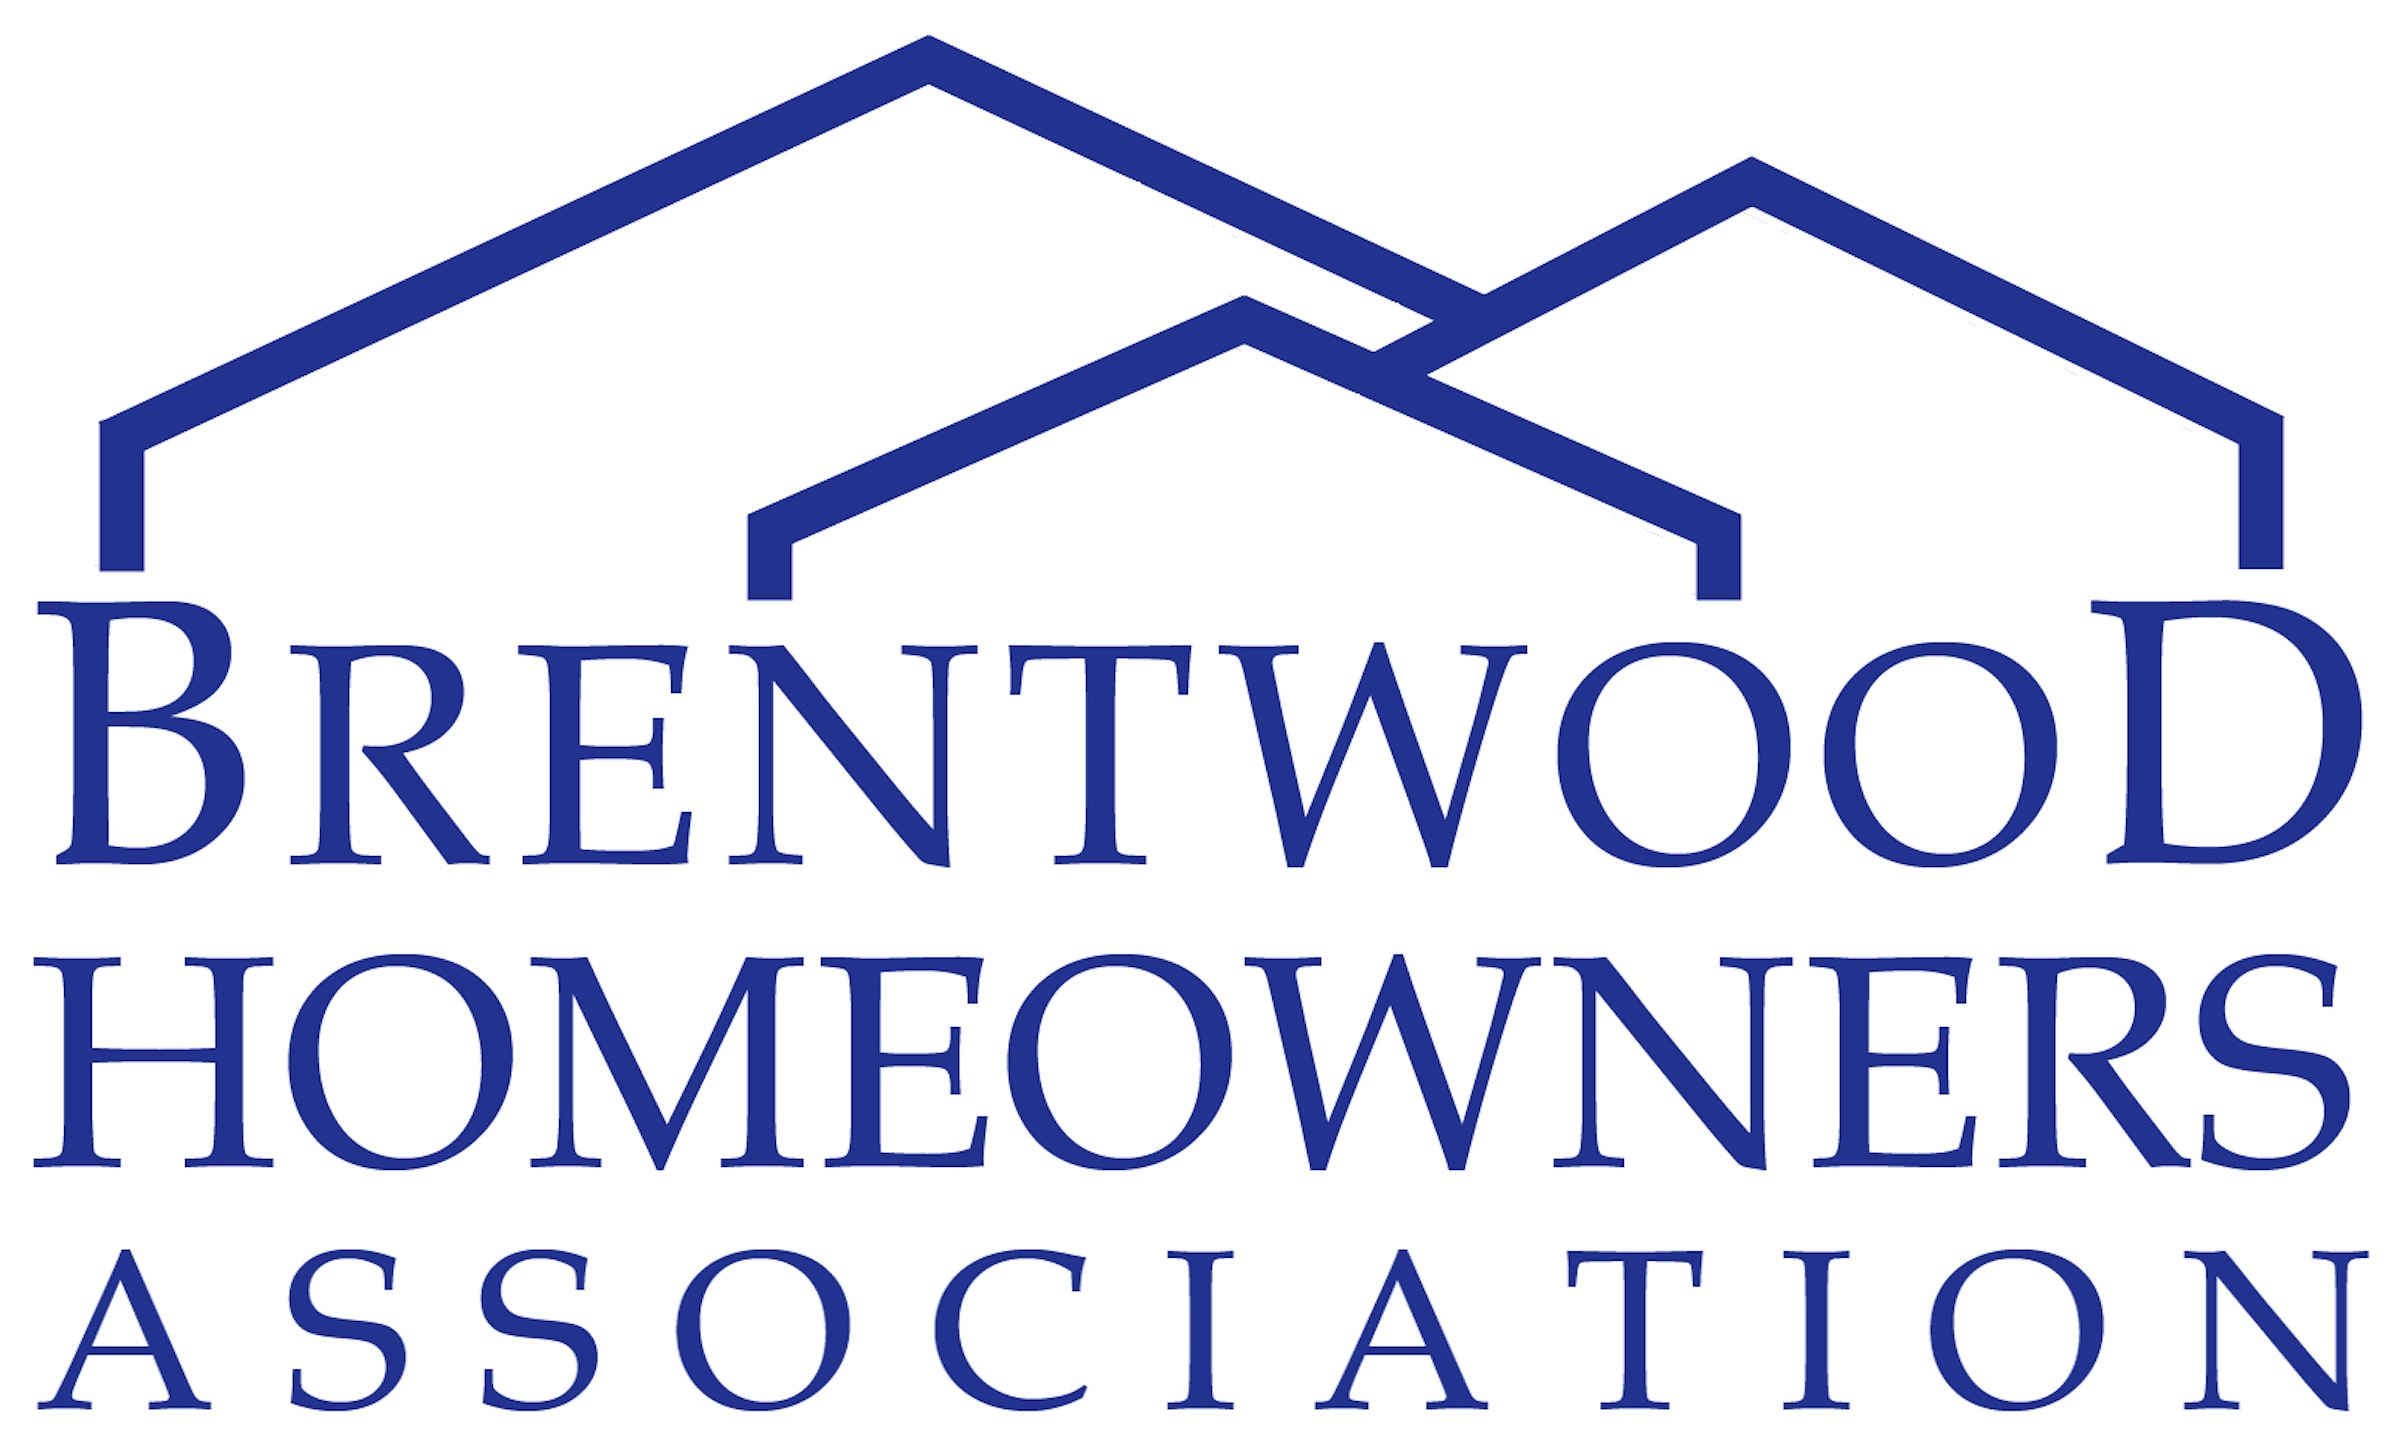 home brentwood homeowners association